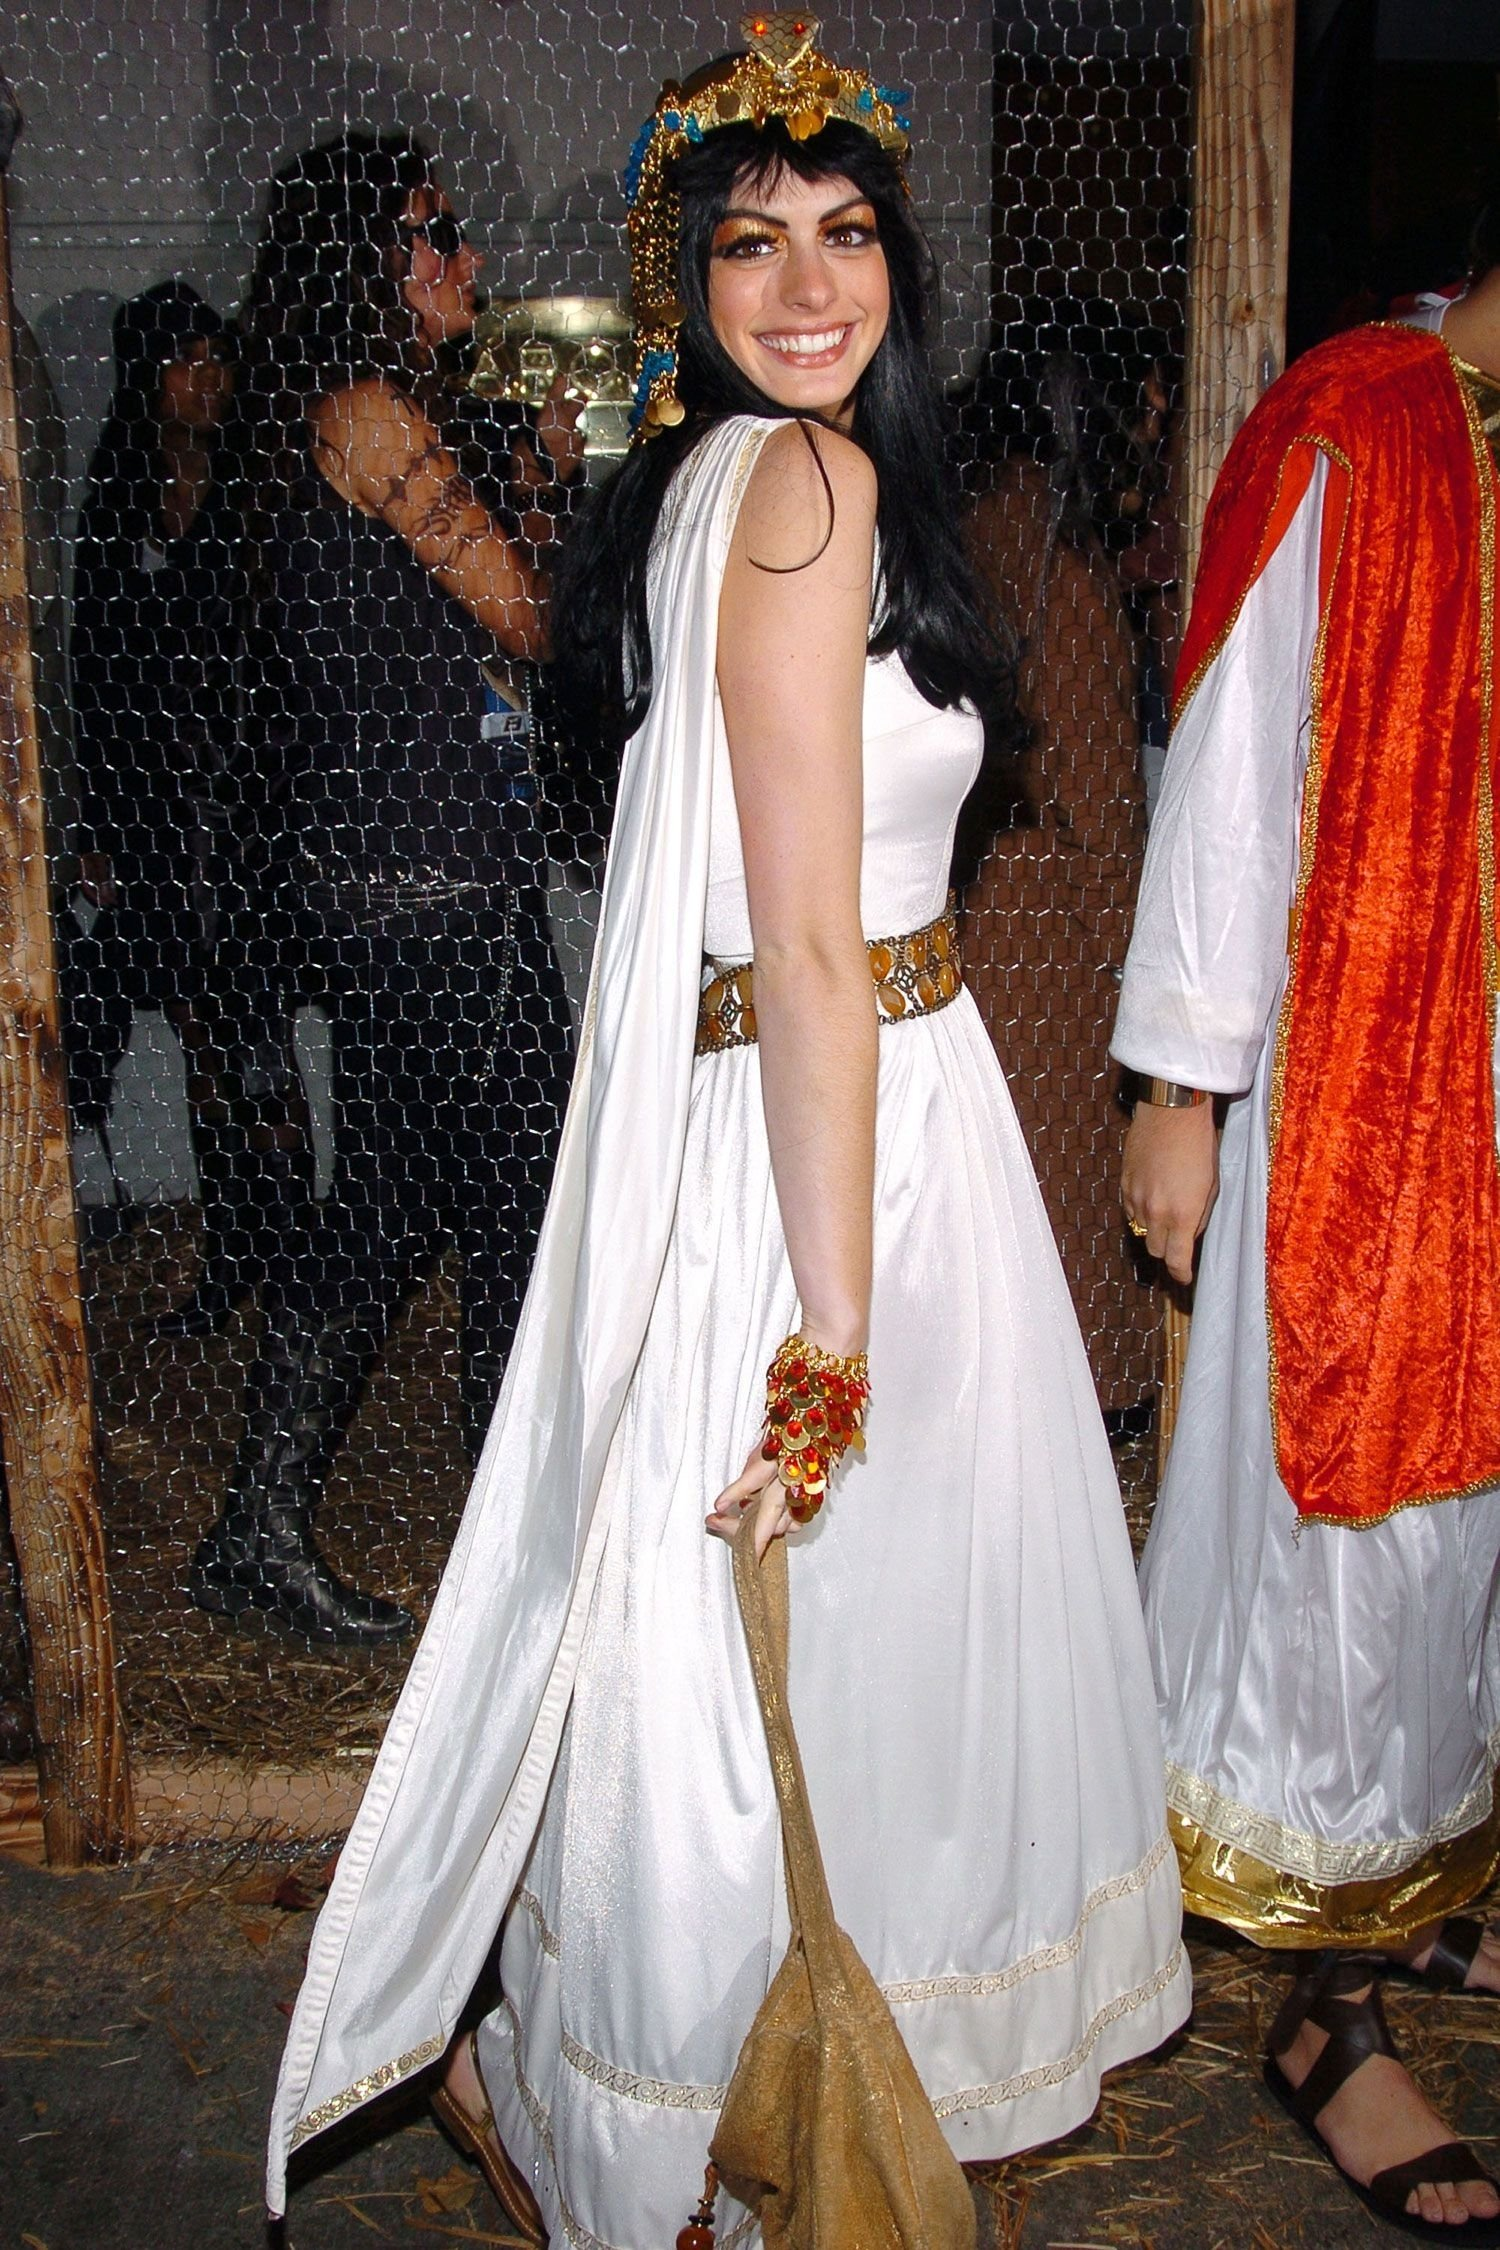 10 fashionable great ideas for halloween costumes 60 epic celebrity halloween costume ideas egyptian goddess 1